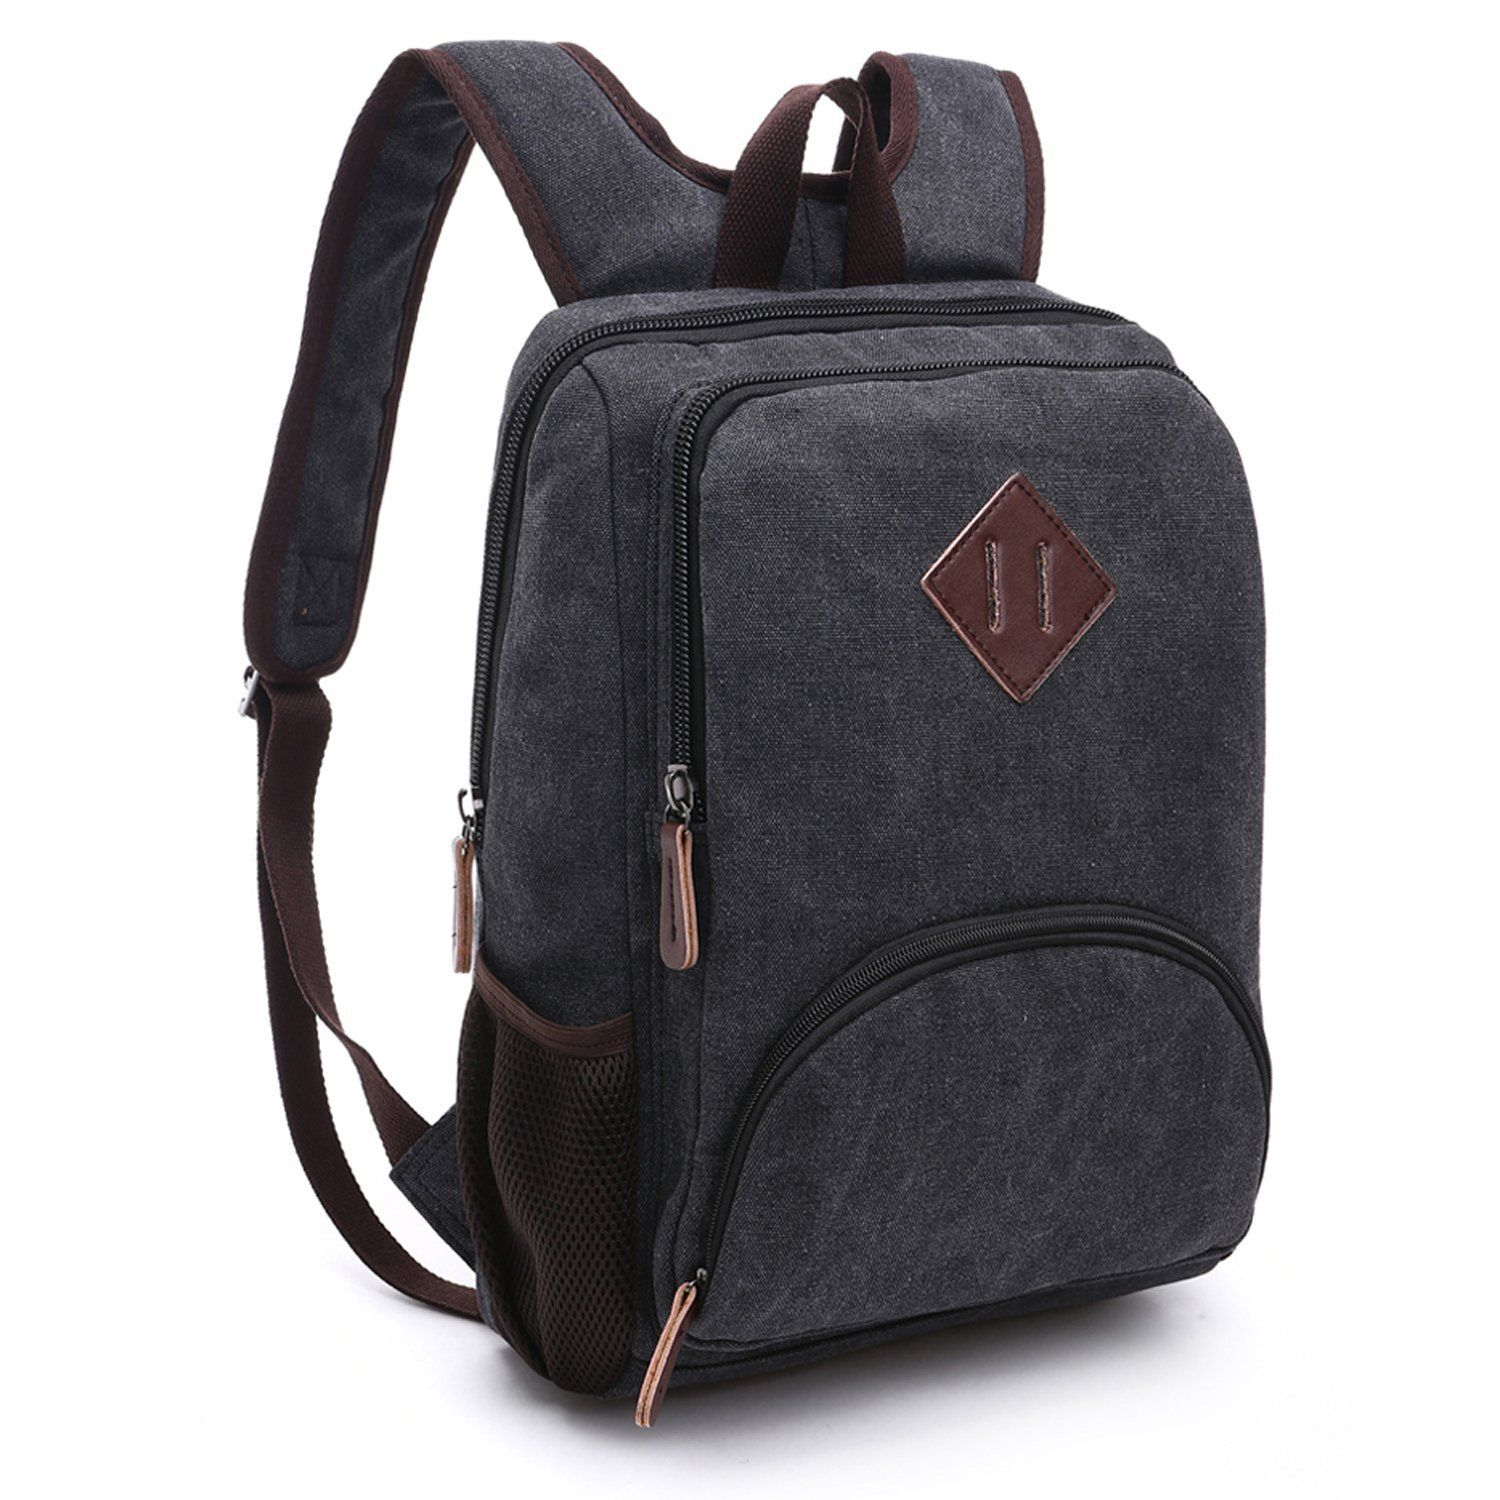 Leisure Student Bag Sac De Voyage En Plein Air Daypack,Gray